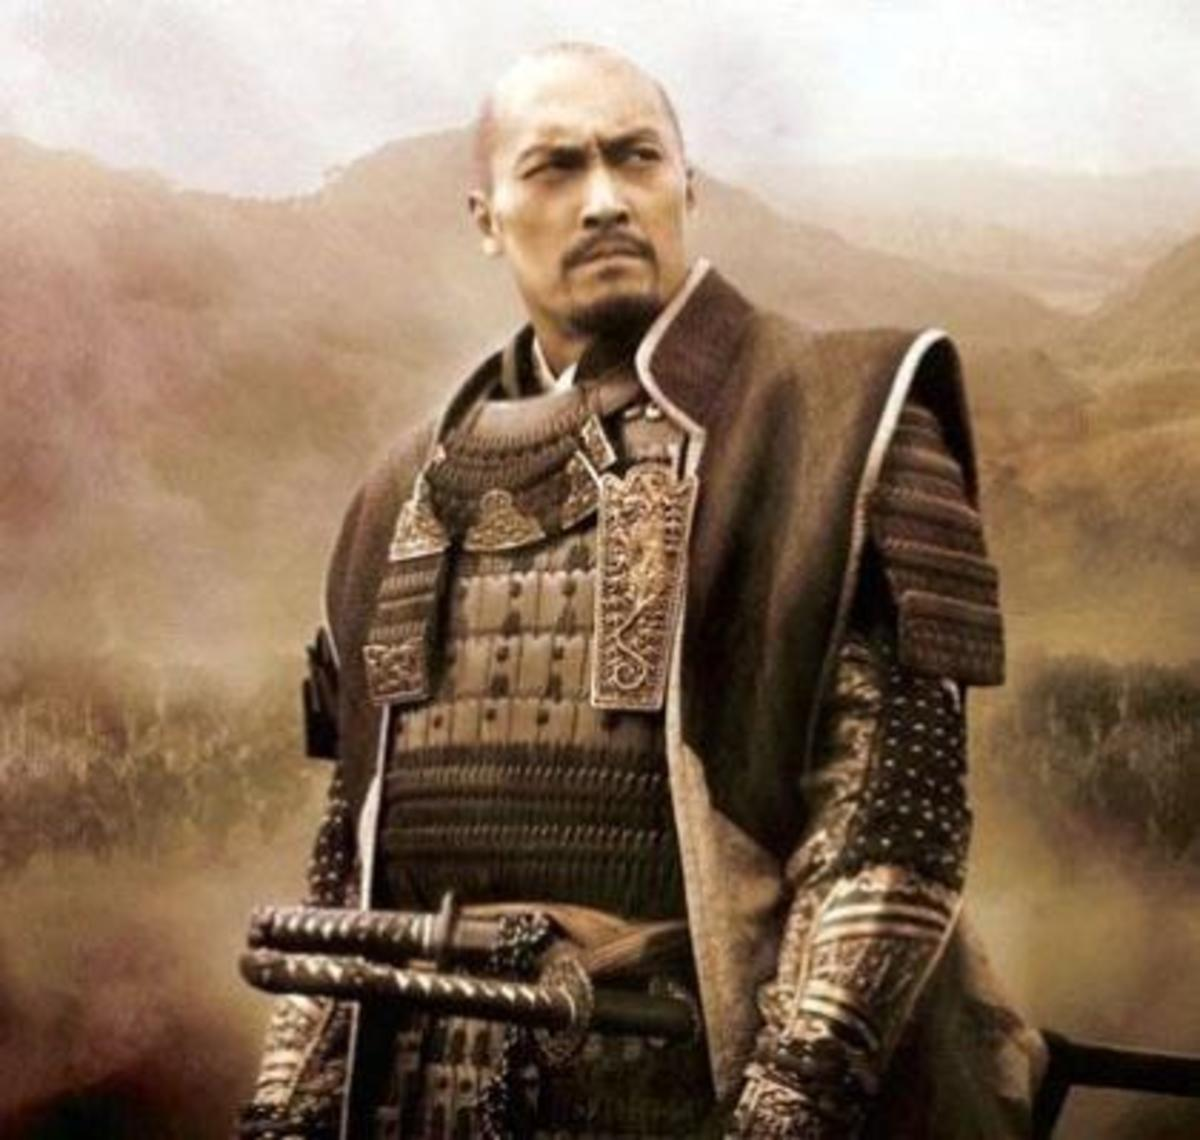 KEN WATANABE, a Japanese but a well known actor too.